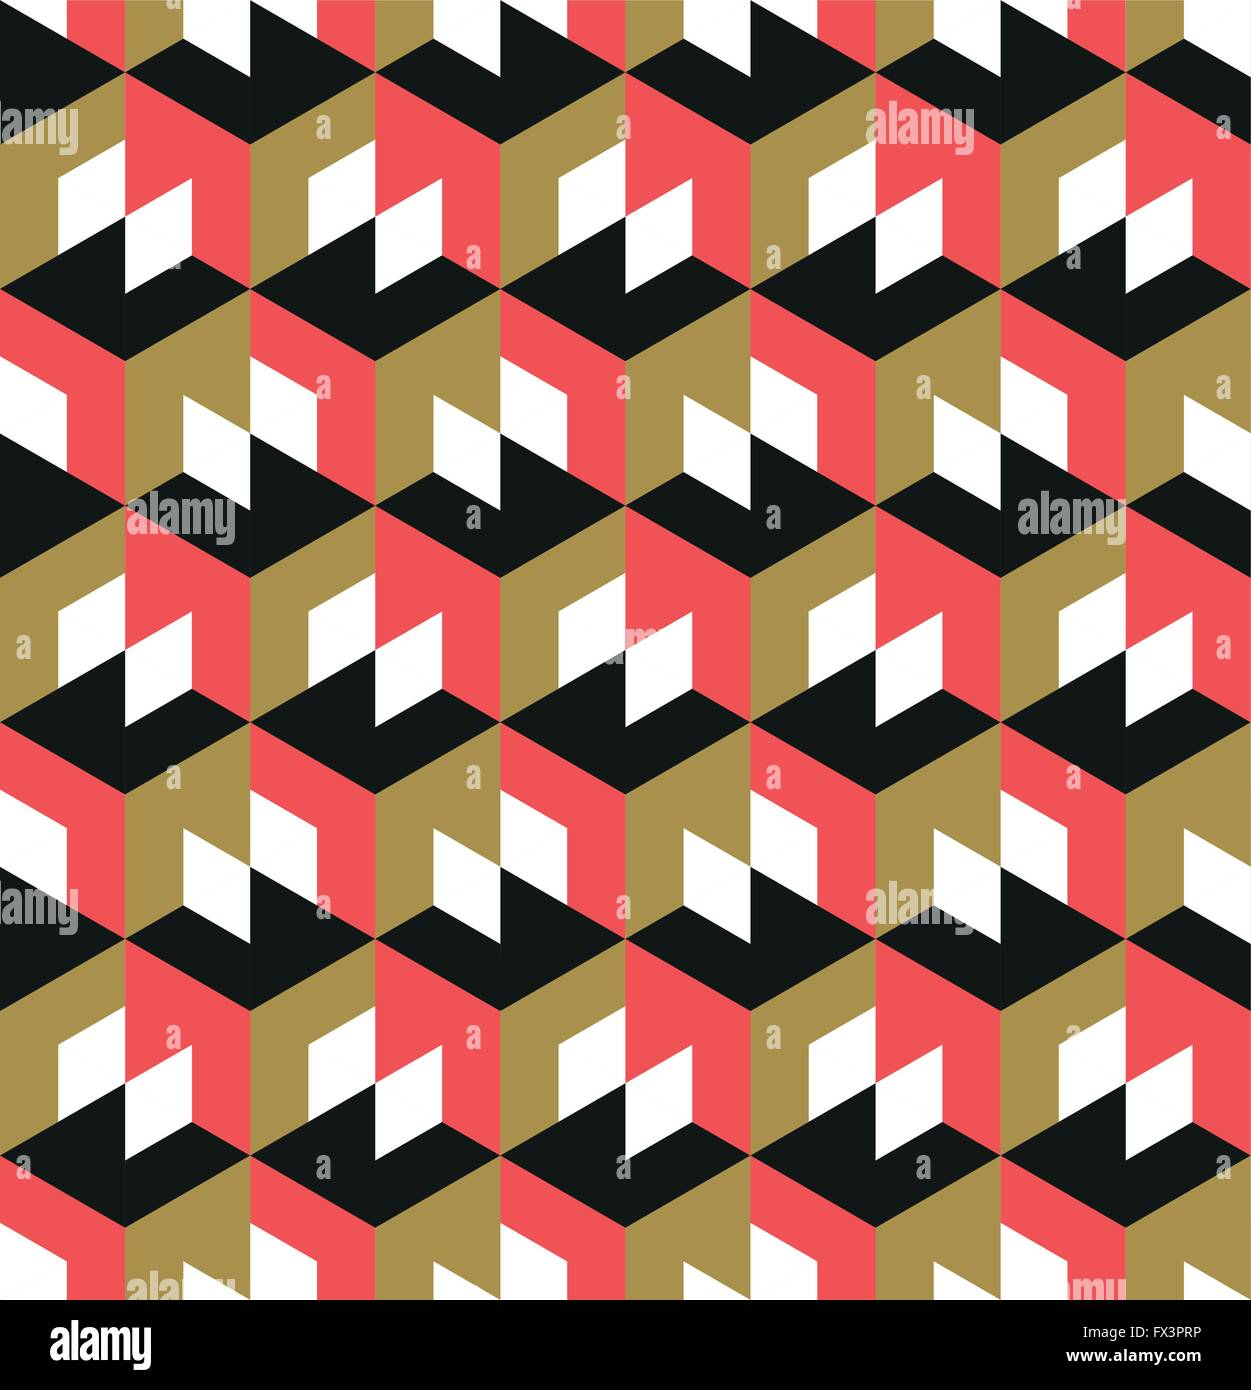 Seamless Geometric Pattern. Abstract geometric background design. Vector illustration. - Stock Image